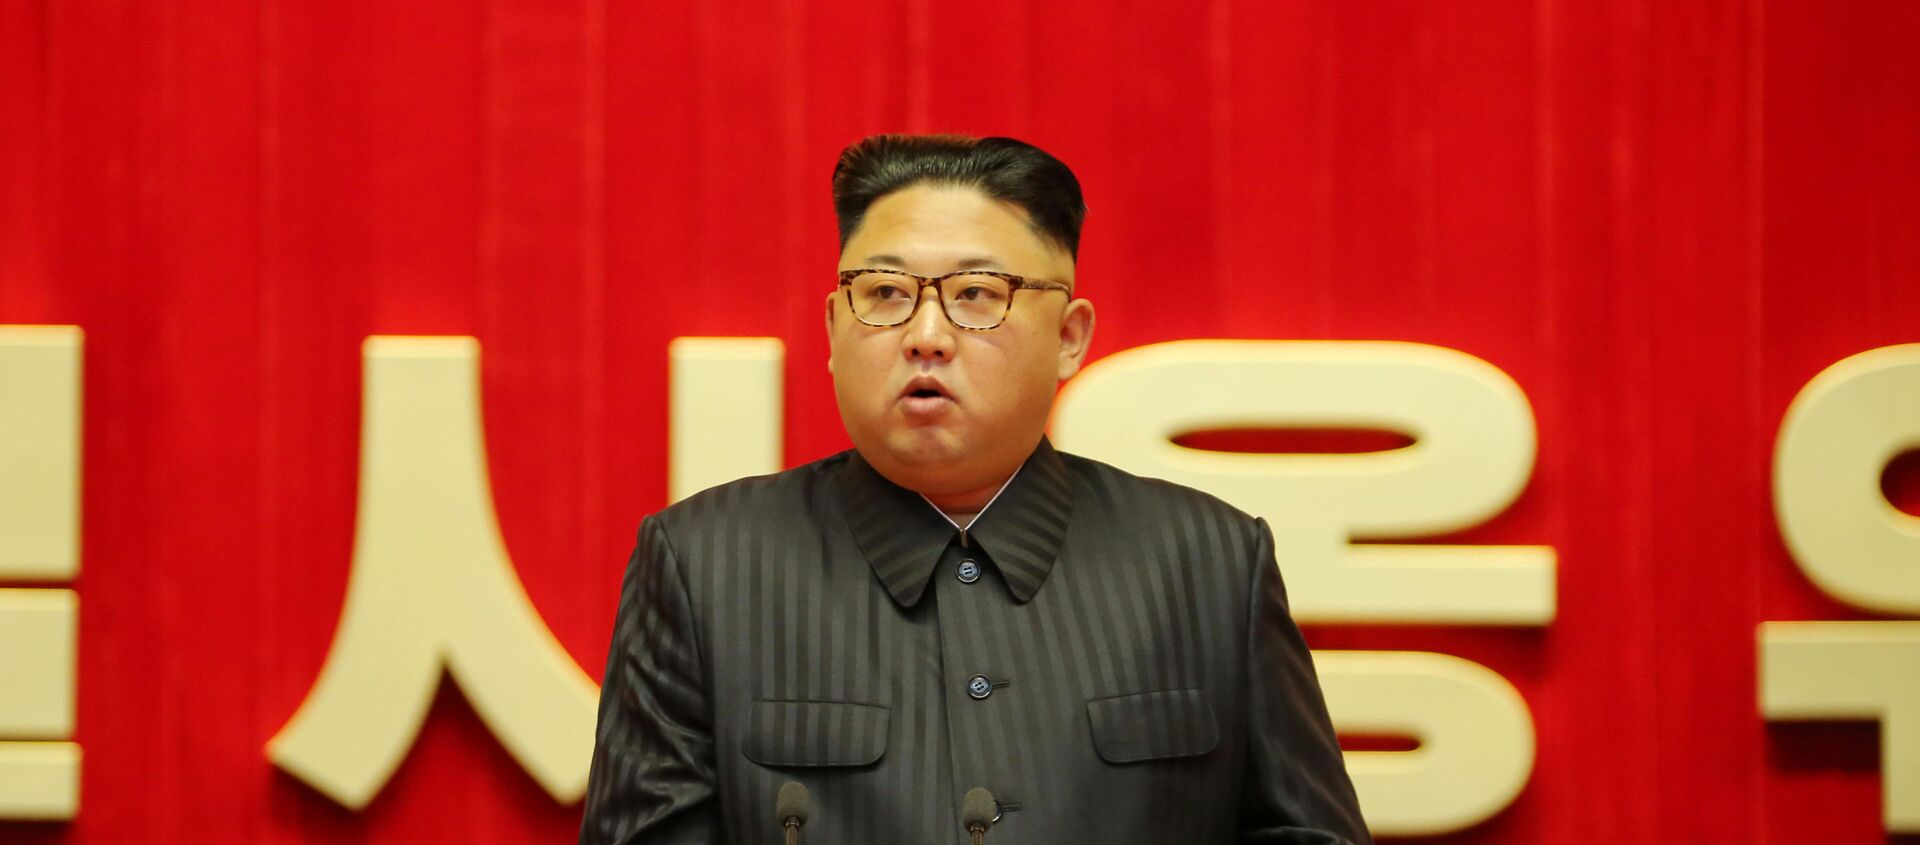 North Korean leader Kim Jong Un guides the 3rd Meeting of Activists of the Korean People's Army (KPA) in the Movement for Winning the Title of O Jung Hup-led 7th Regiment in this undated photo released by North Korea's Korean Central News Agency - Sputnik Mundo, 1920, 01.12.2020